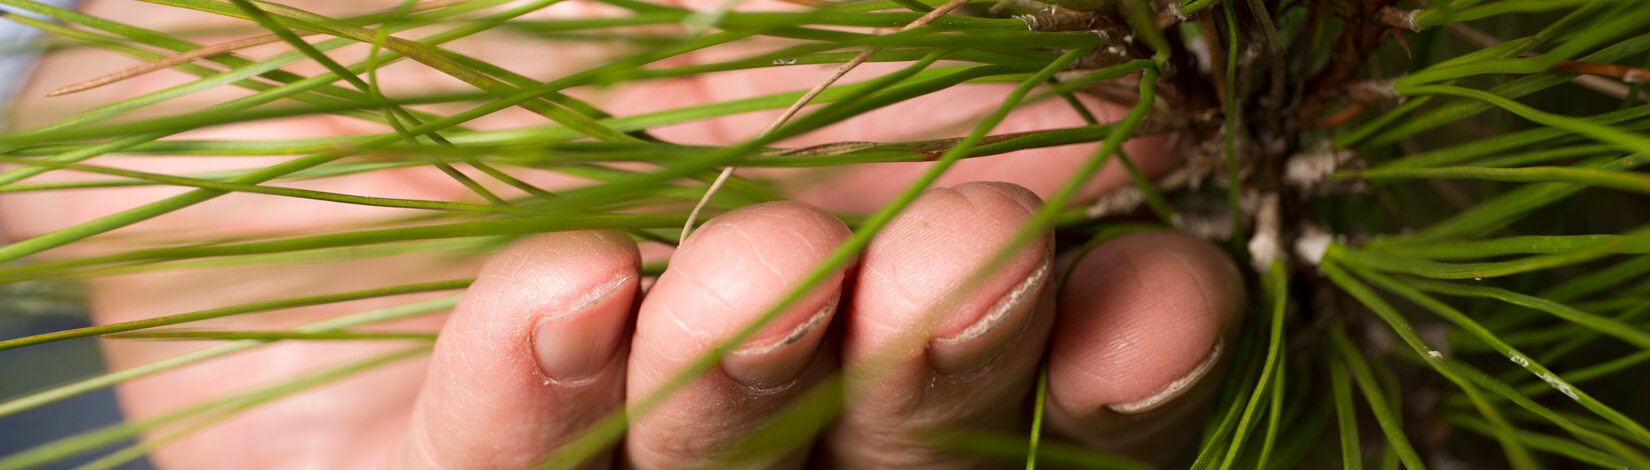 hand touching pine needles